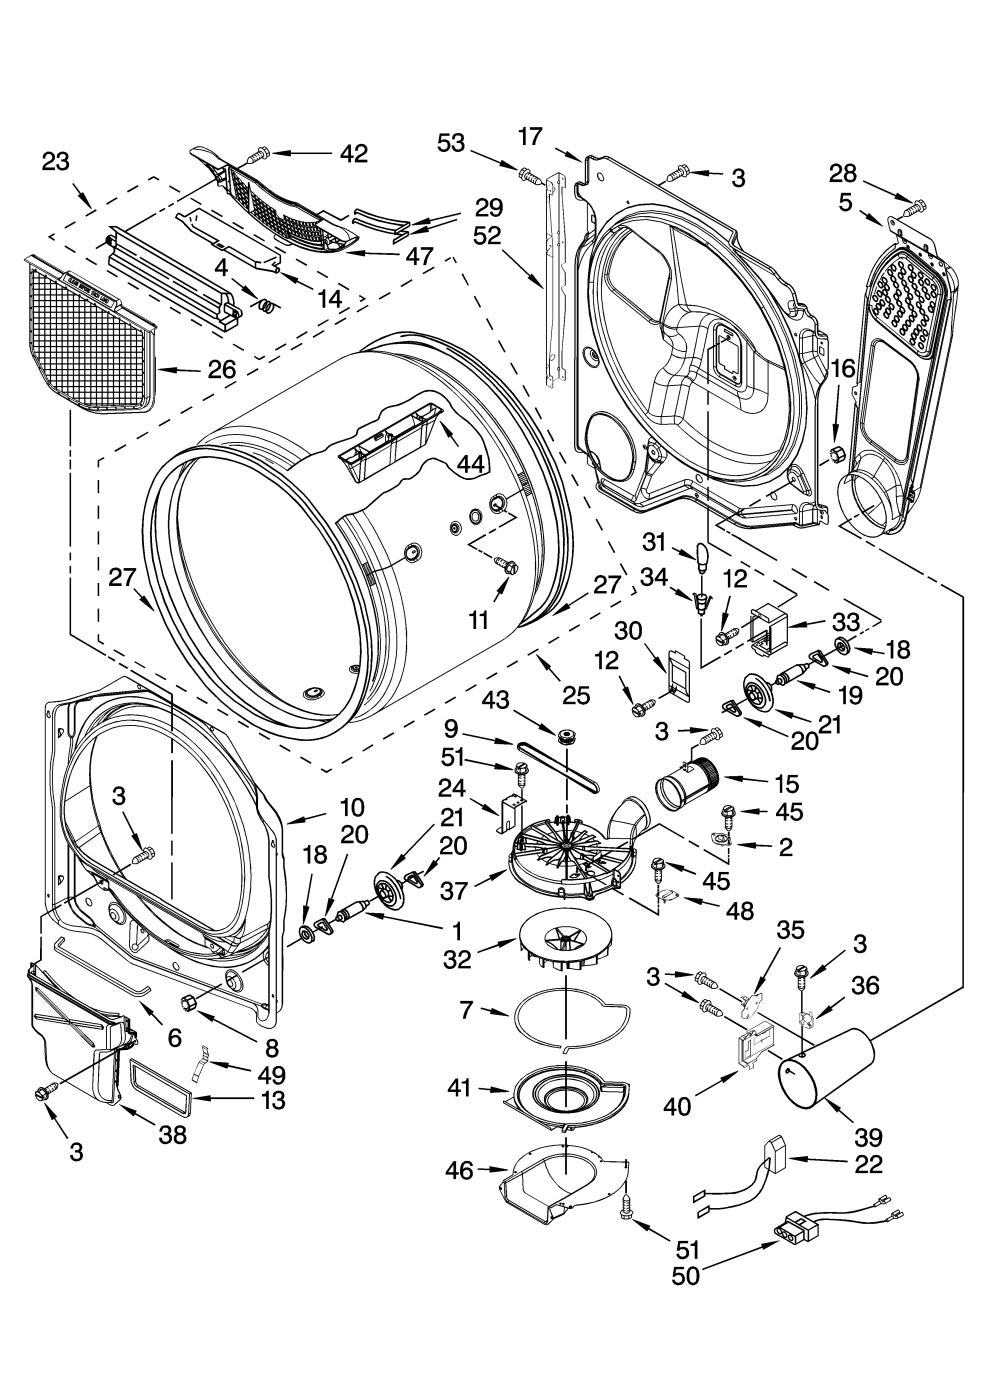 medium resolution of maytag dryer schematic wiring diagram source maytag dryer schematic drawings maytag dryer diagrams wiring diagram hub